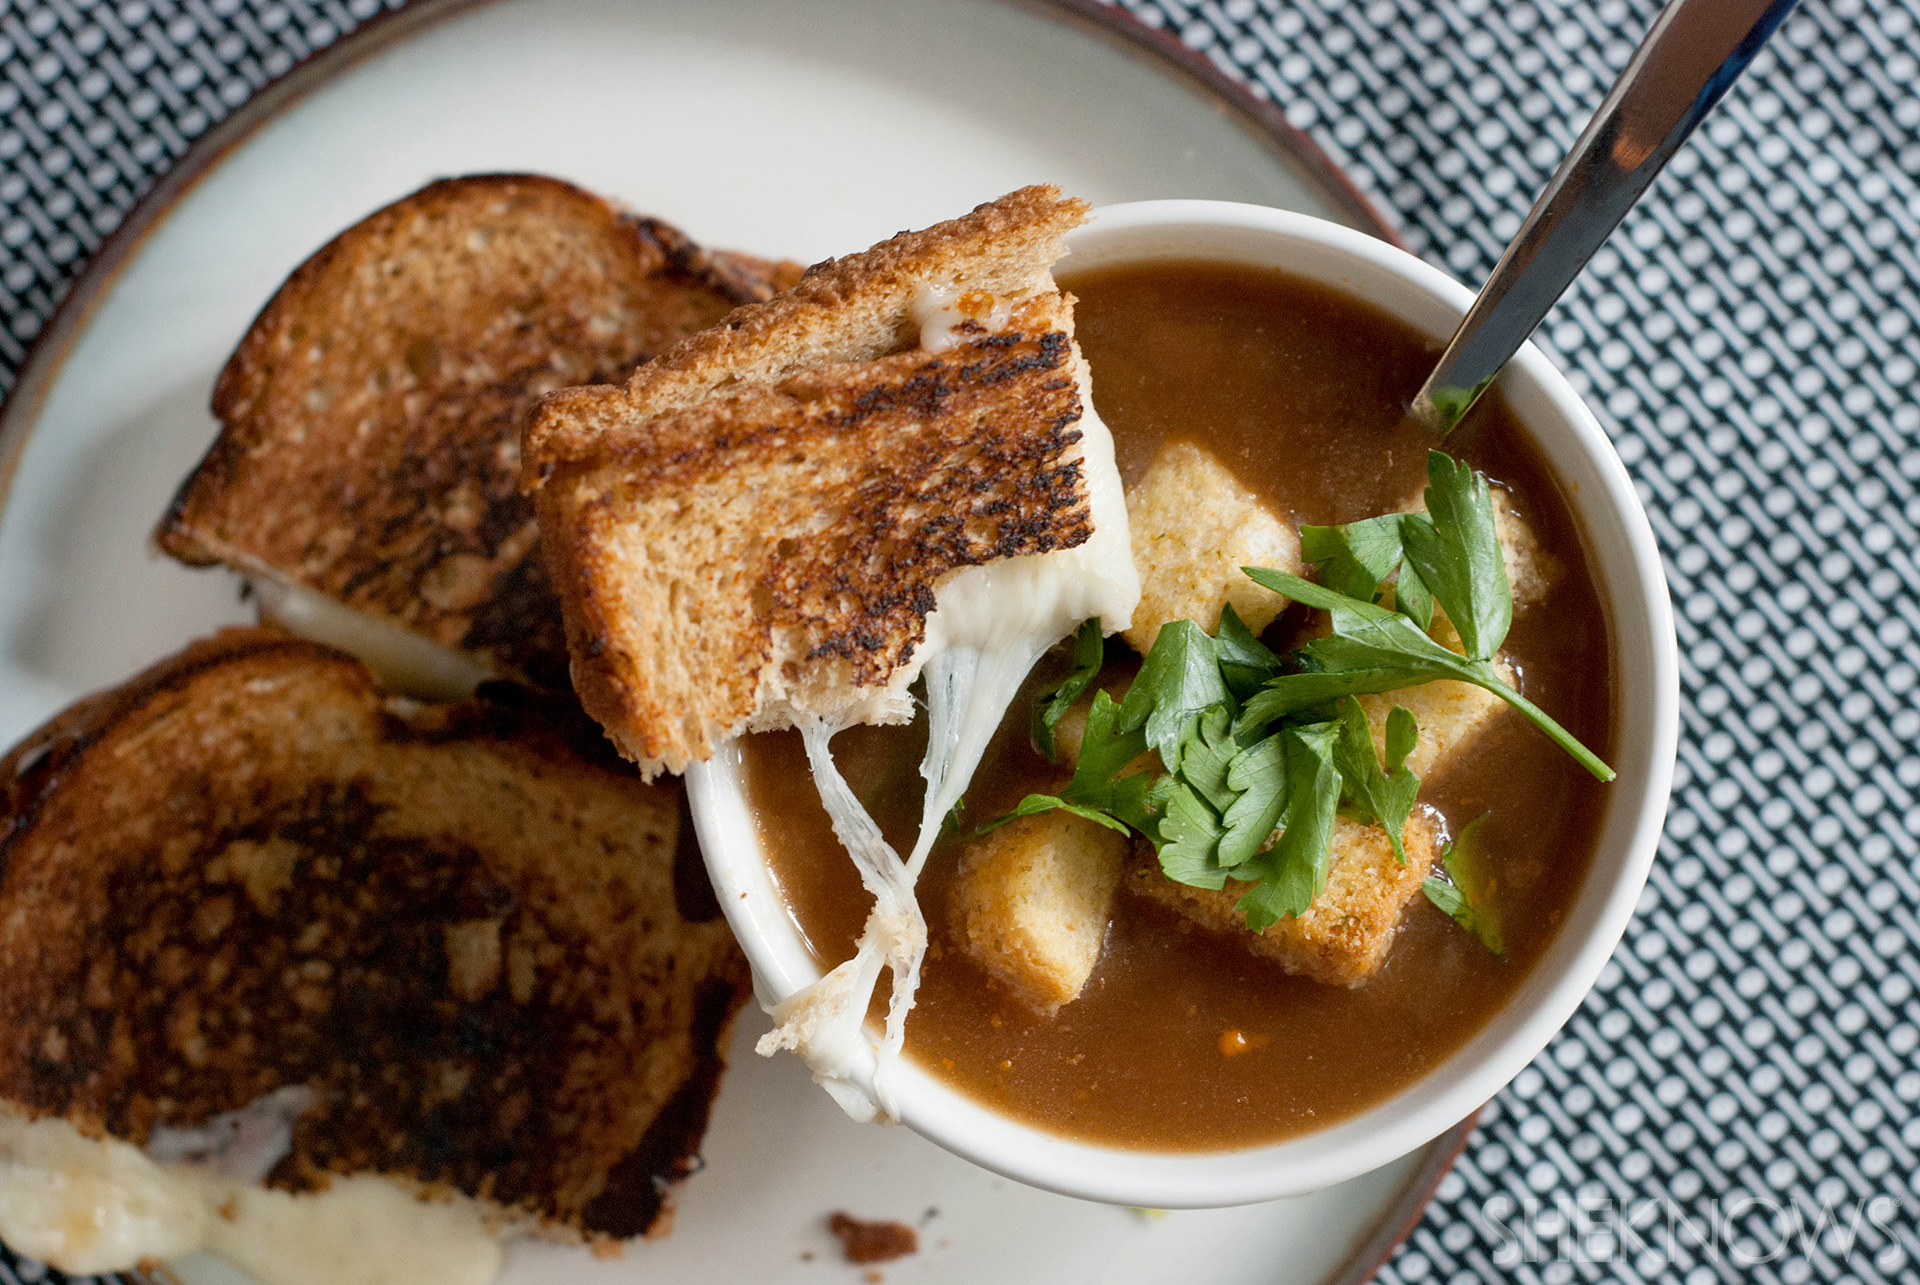 Go Gourmet With This Vegetarian French Onion Soup And Gruyere